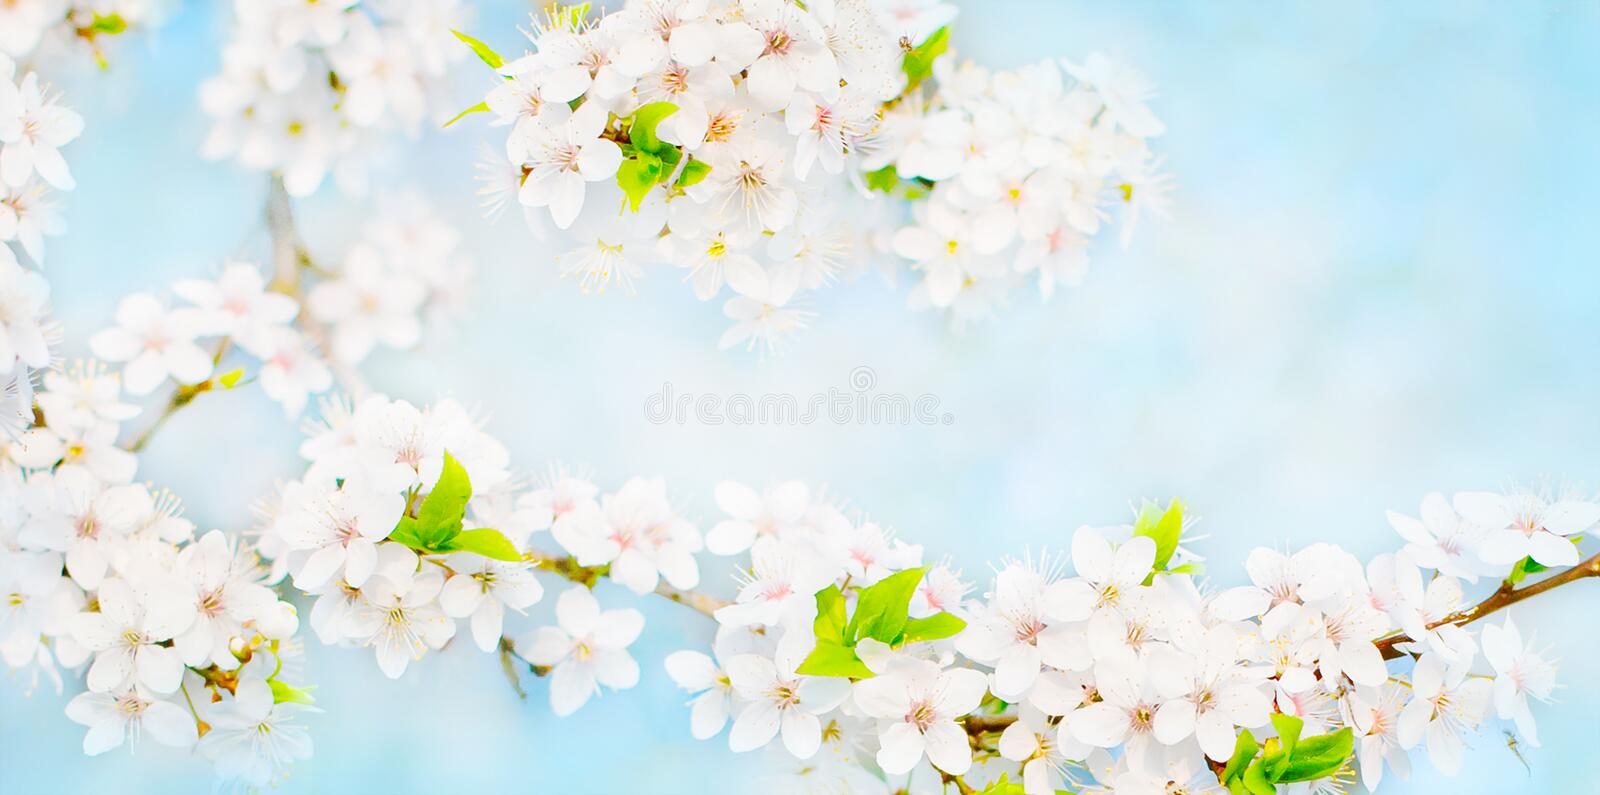 Wide Angle Spring background with cherry flowers royalty free stock photography